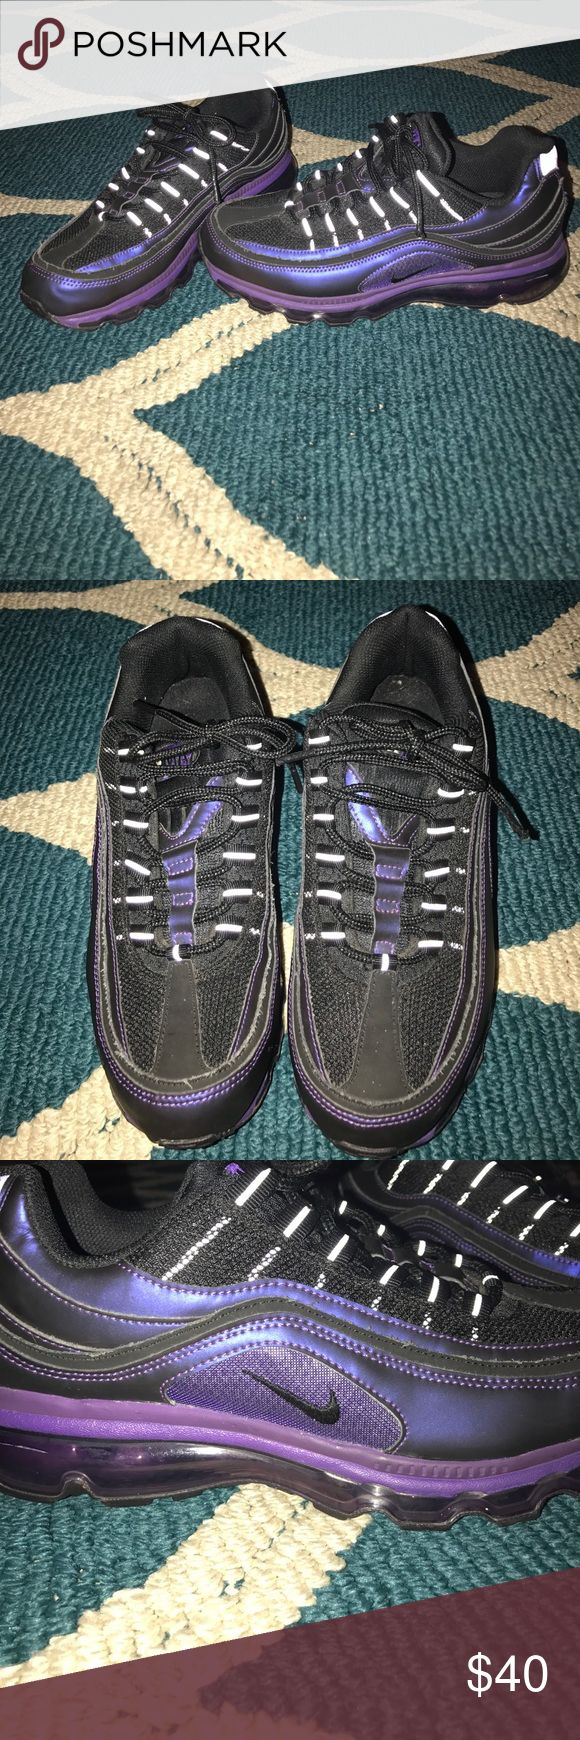 Ladies Nike Air Max Purple and Black with purple air bubble ladies Nike 97 Air Max Nike Shoes Athletic Shoes